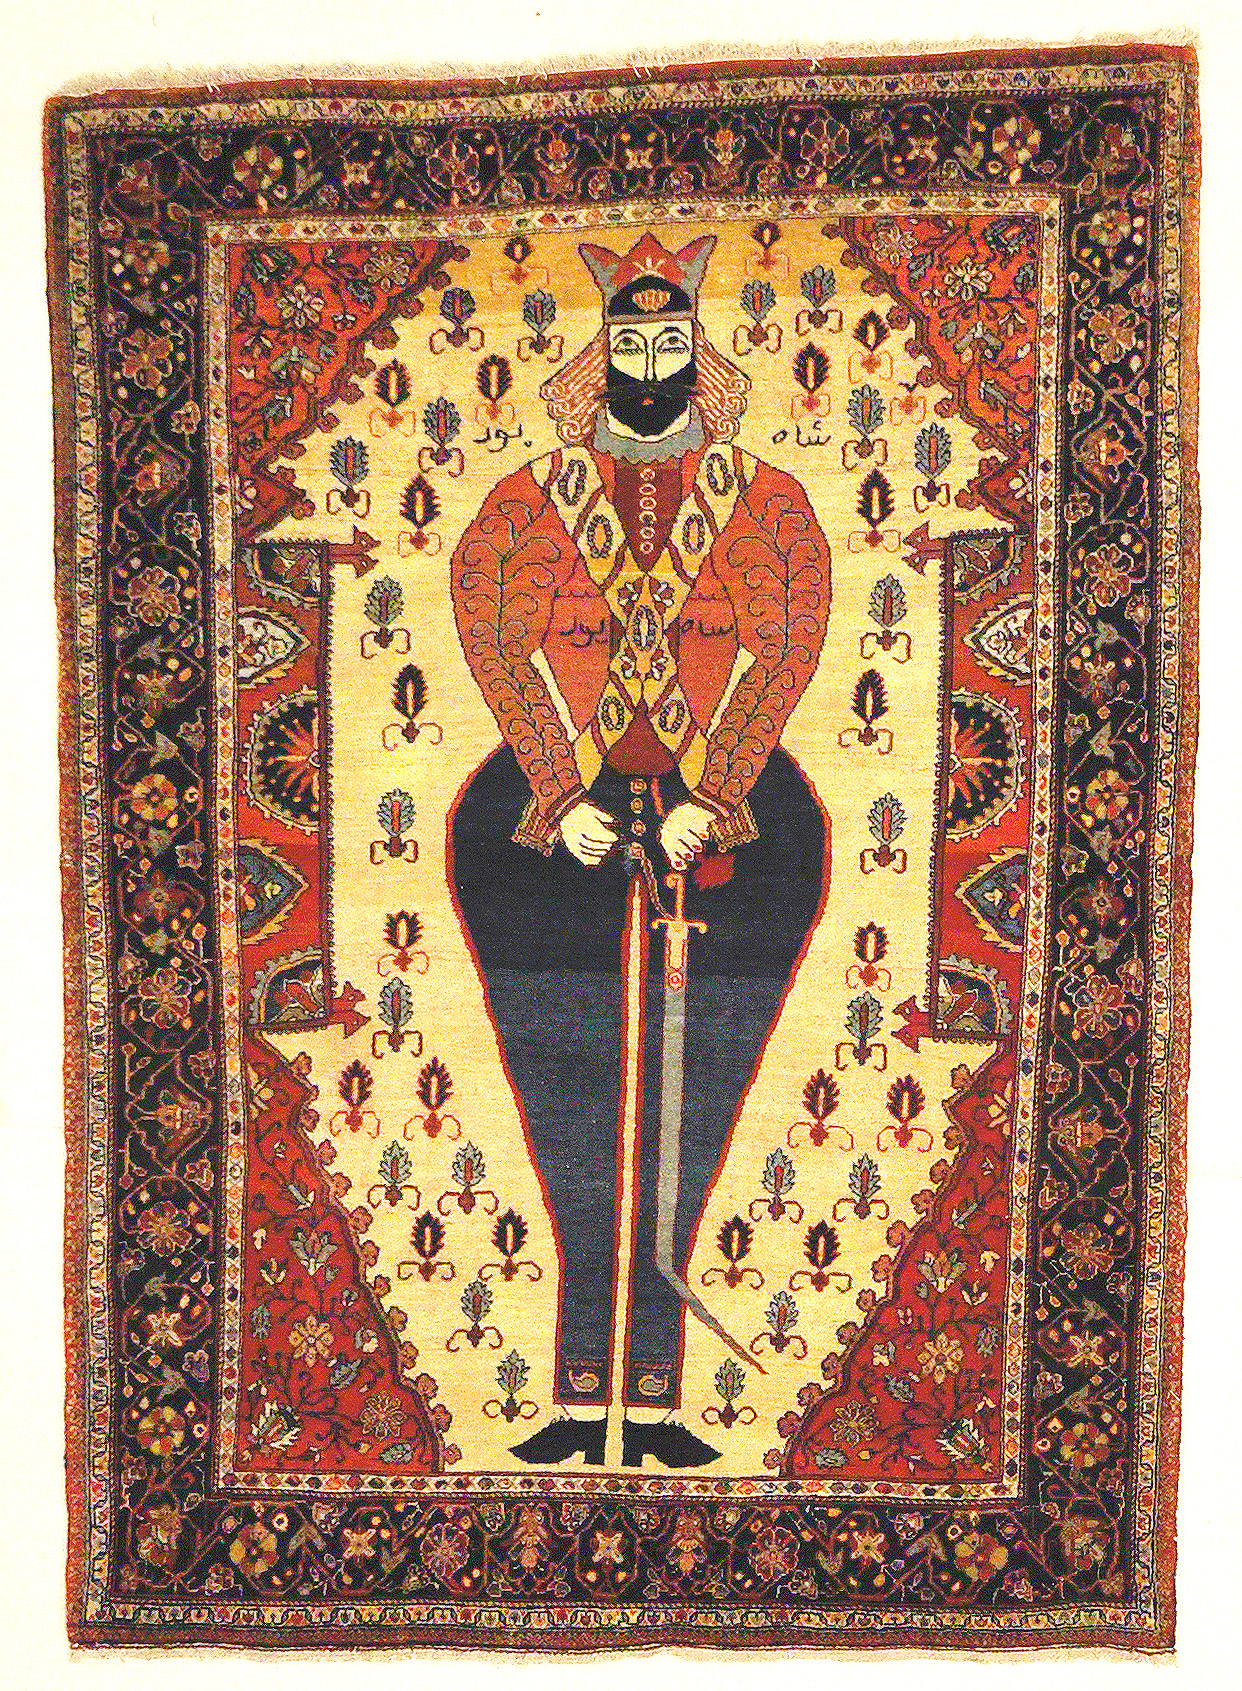 Antique Sarouk Farahan Very Rare Shahpour Figure Genuine Handmade Woven Carpet Art Natural Dyed Wool Santa Barbara Design Center